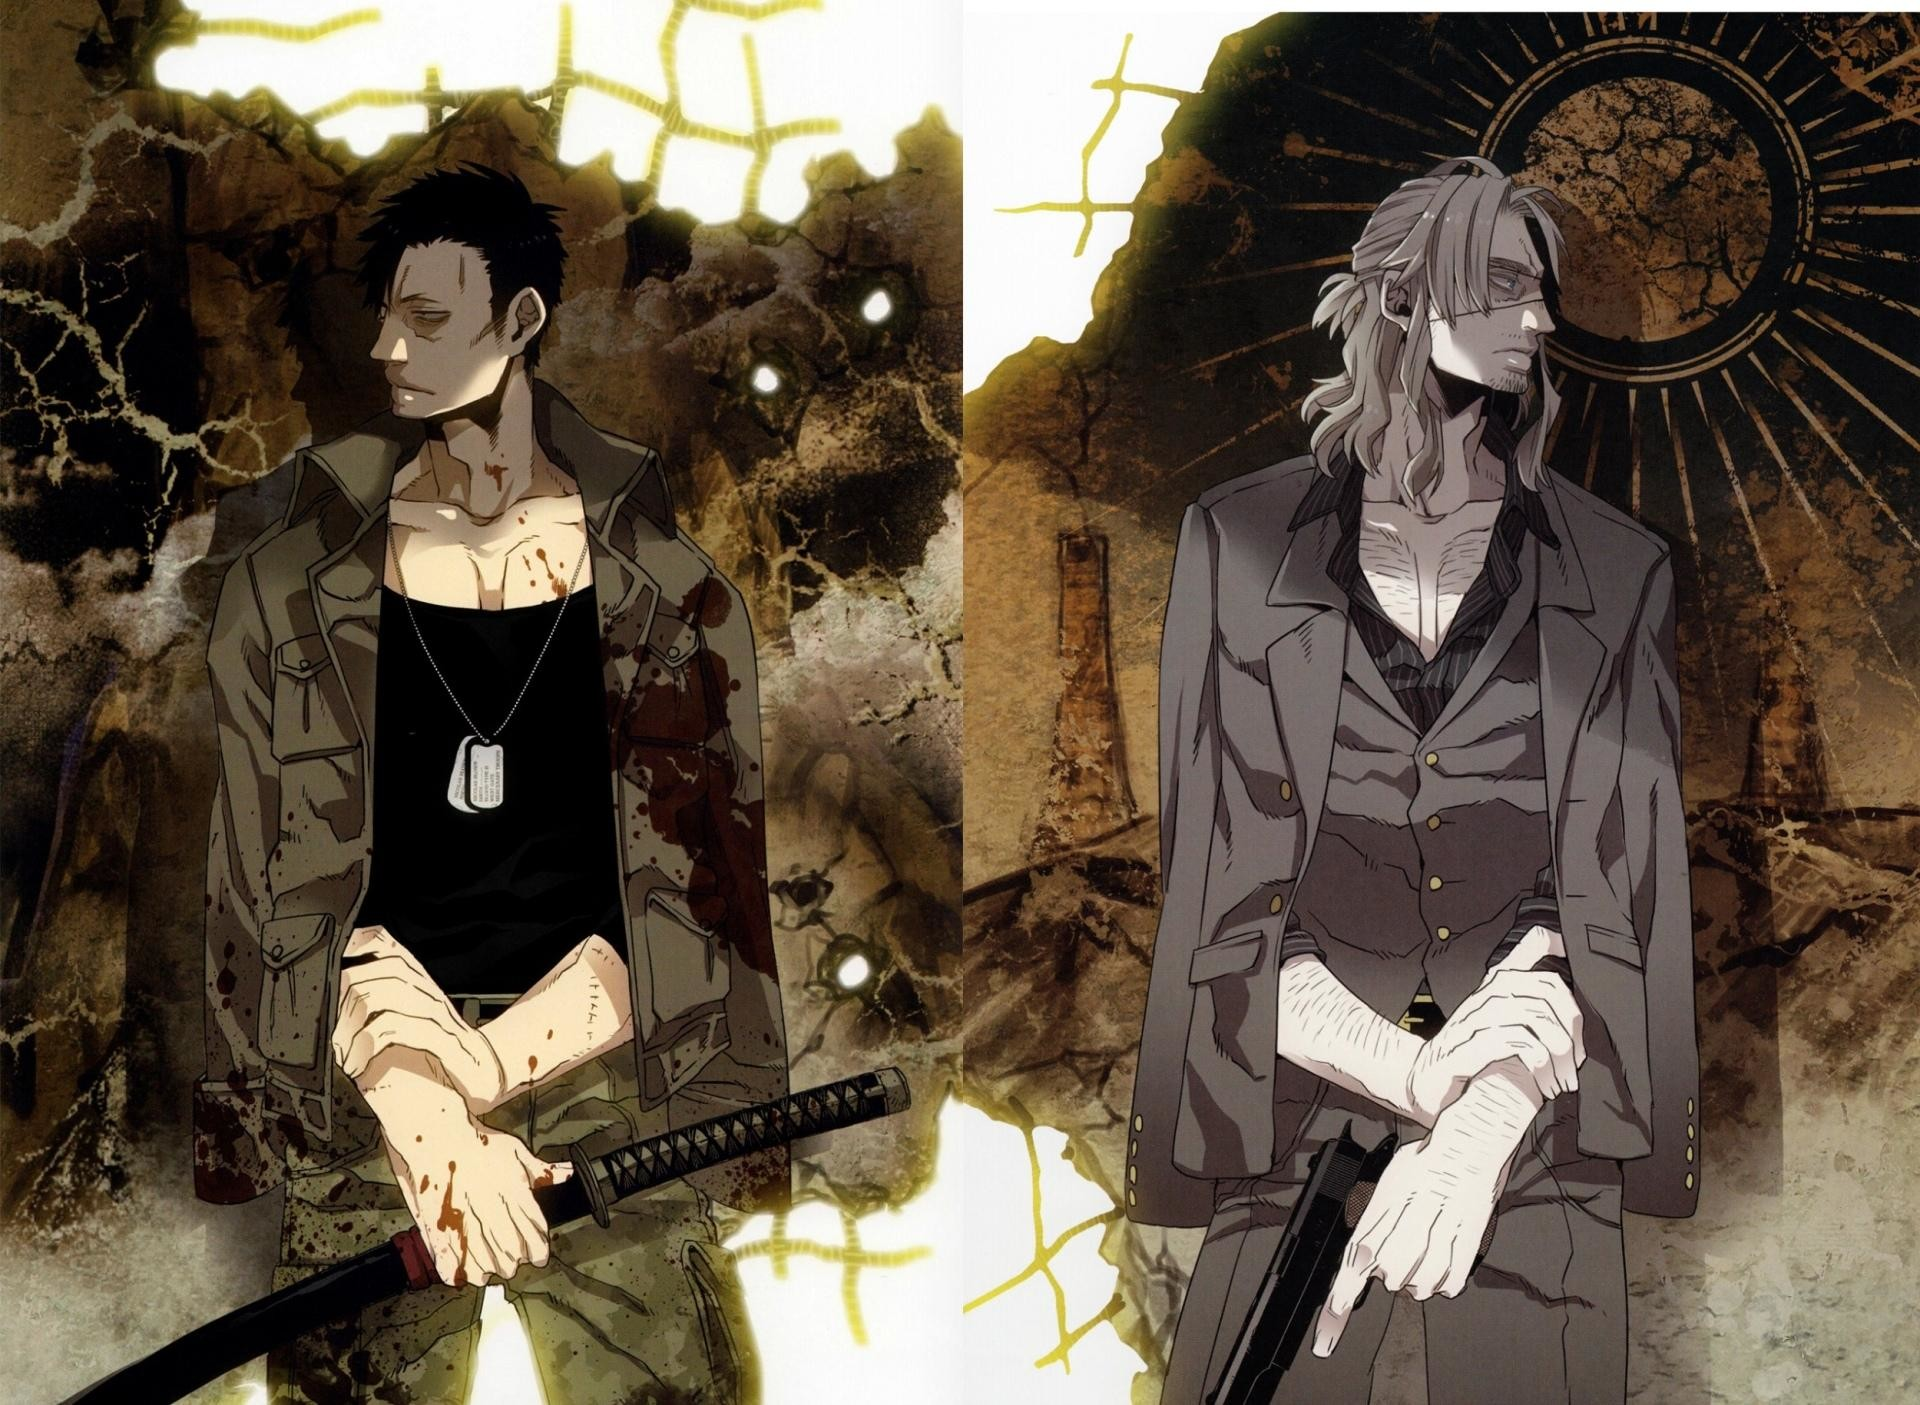 Res: 1920x1405, Anime Gangsta 720x1280 Mobile Wallpaper Source · Gangsta Anime Wallpaper HD  Download